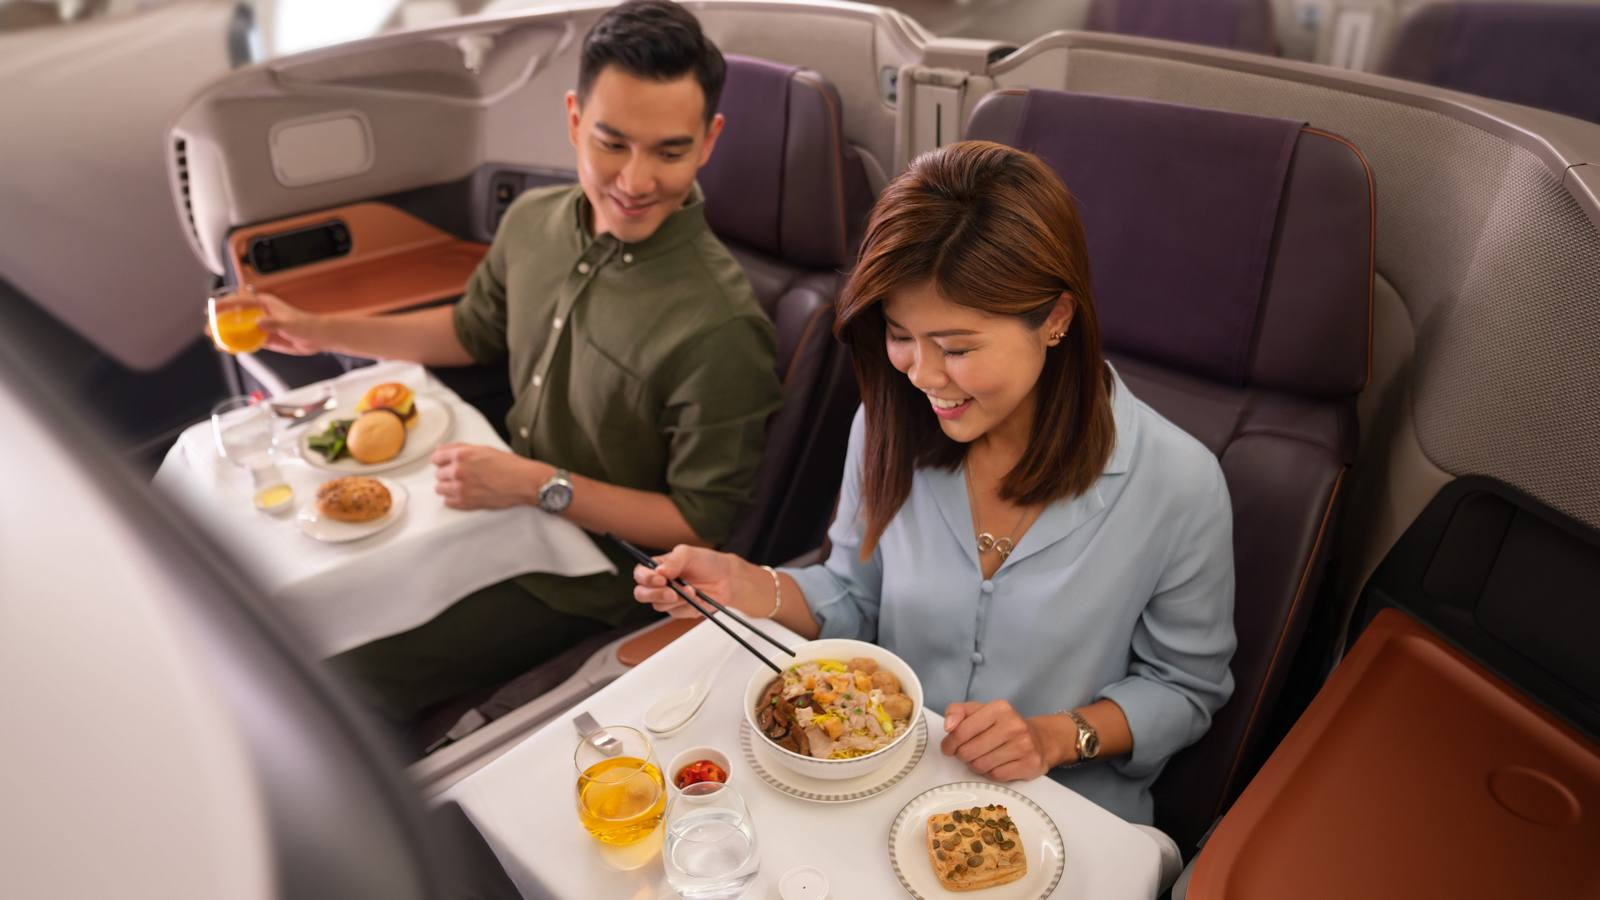 As no one is flying anymore, Singapore Airlines is converting its uber luxurious business class section on the Airbus A380 into a fine dine restaurant